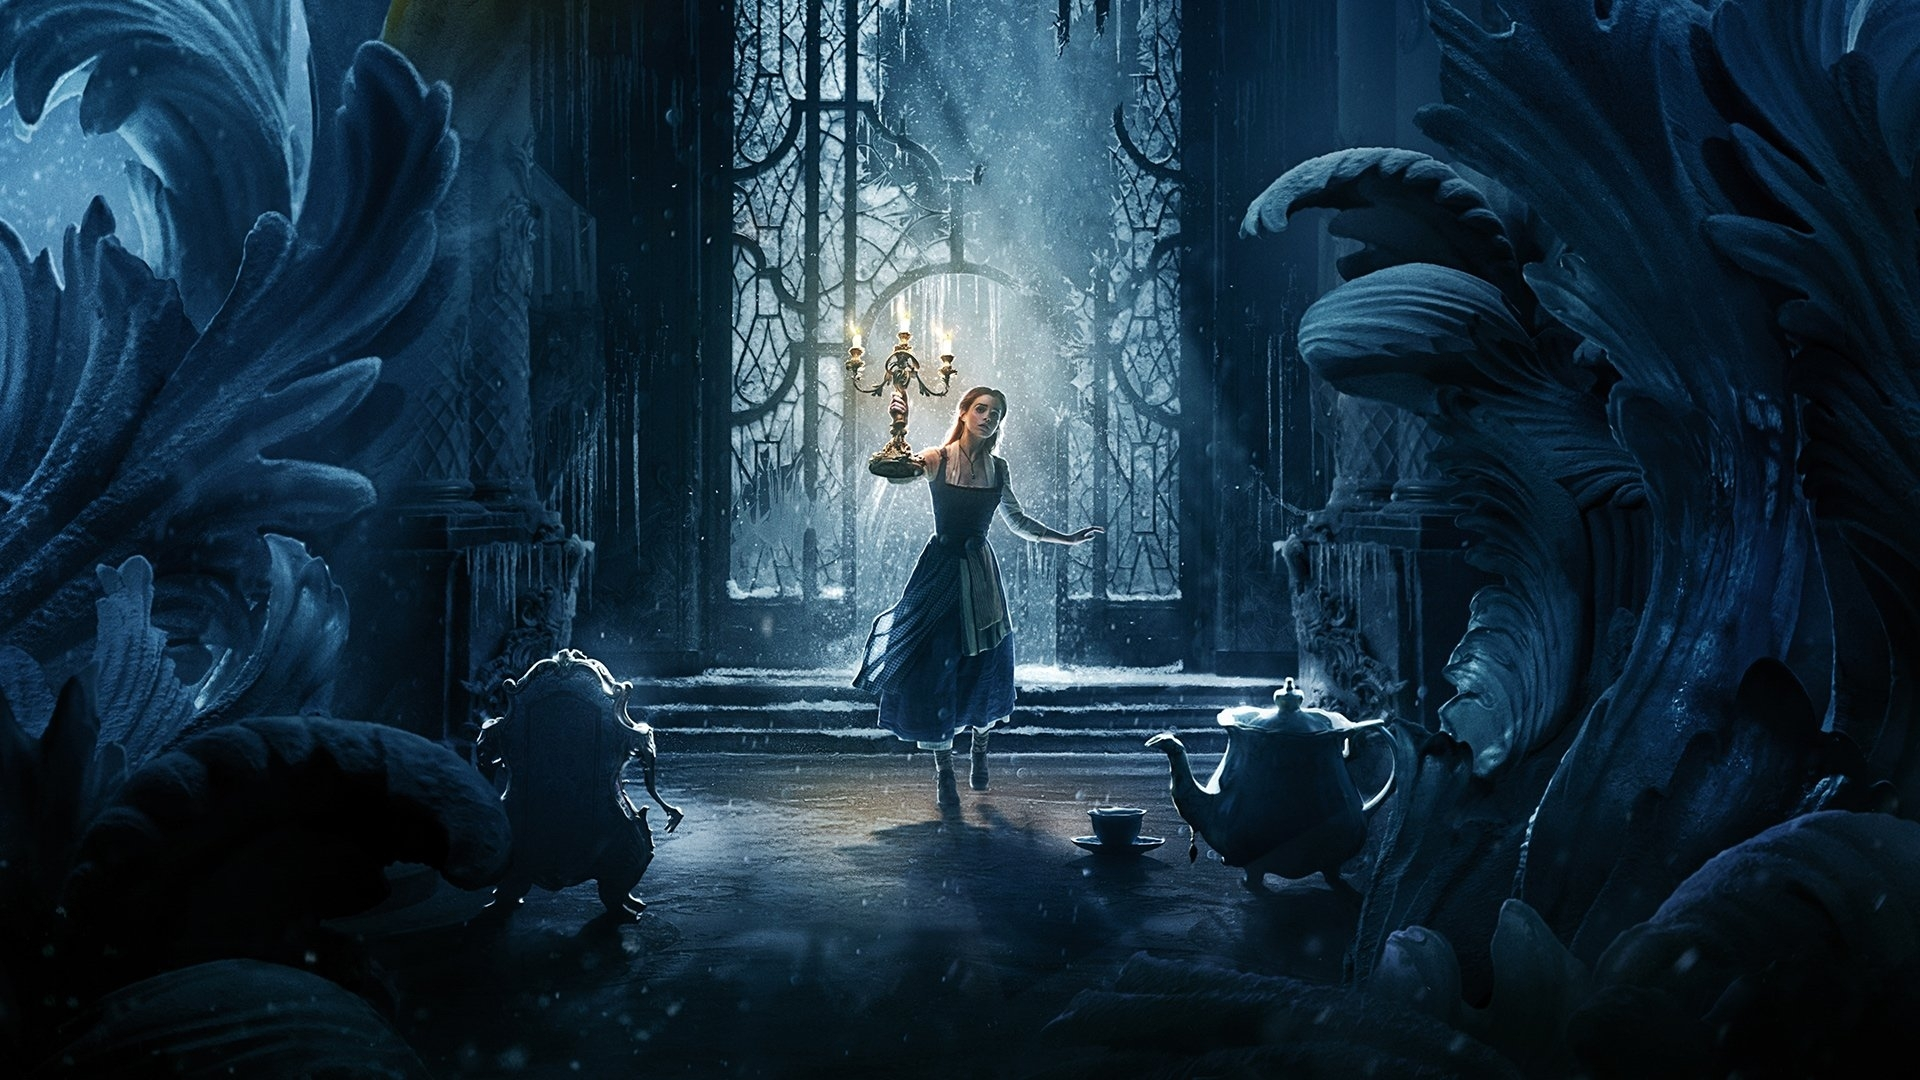 23 beauty and the beast (2017) hd wallpapers | background images